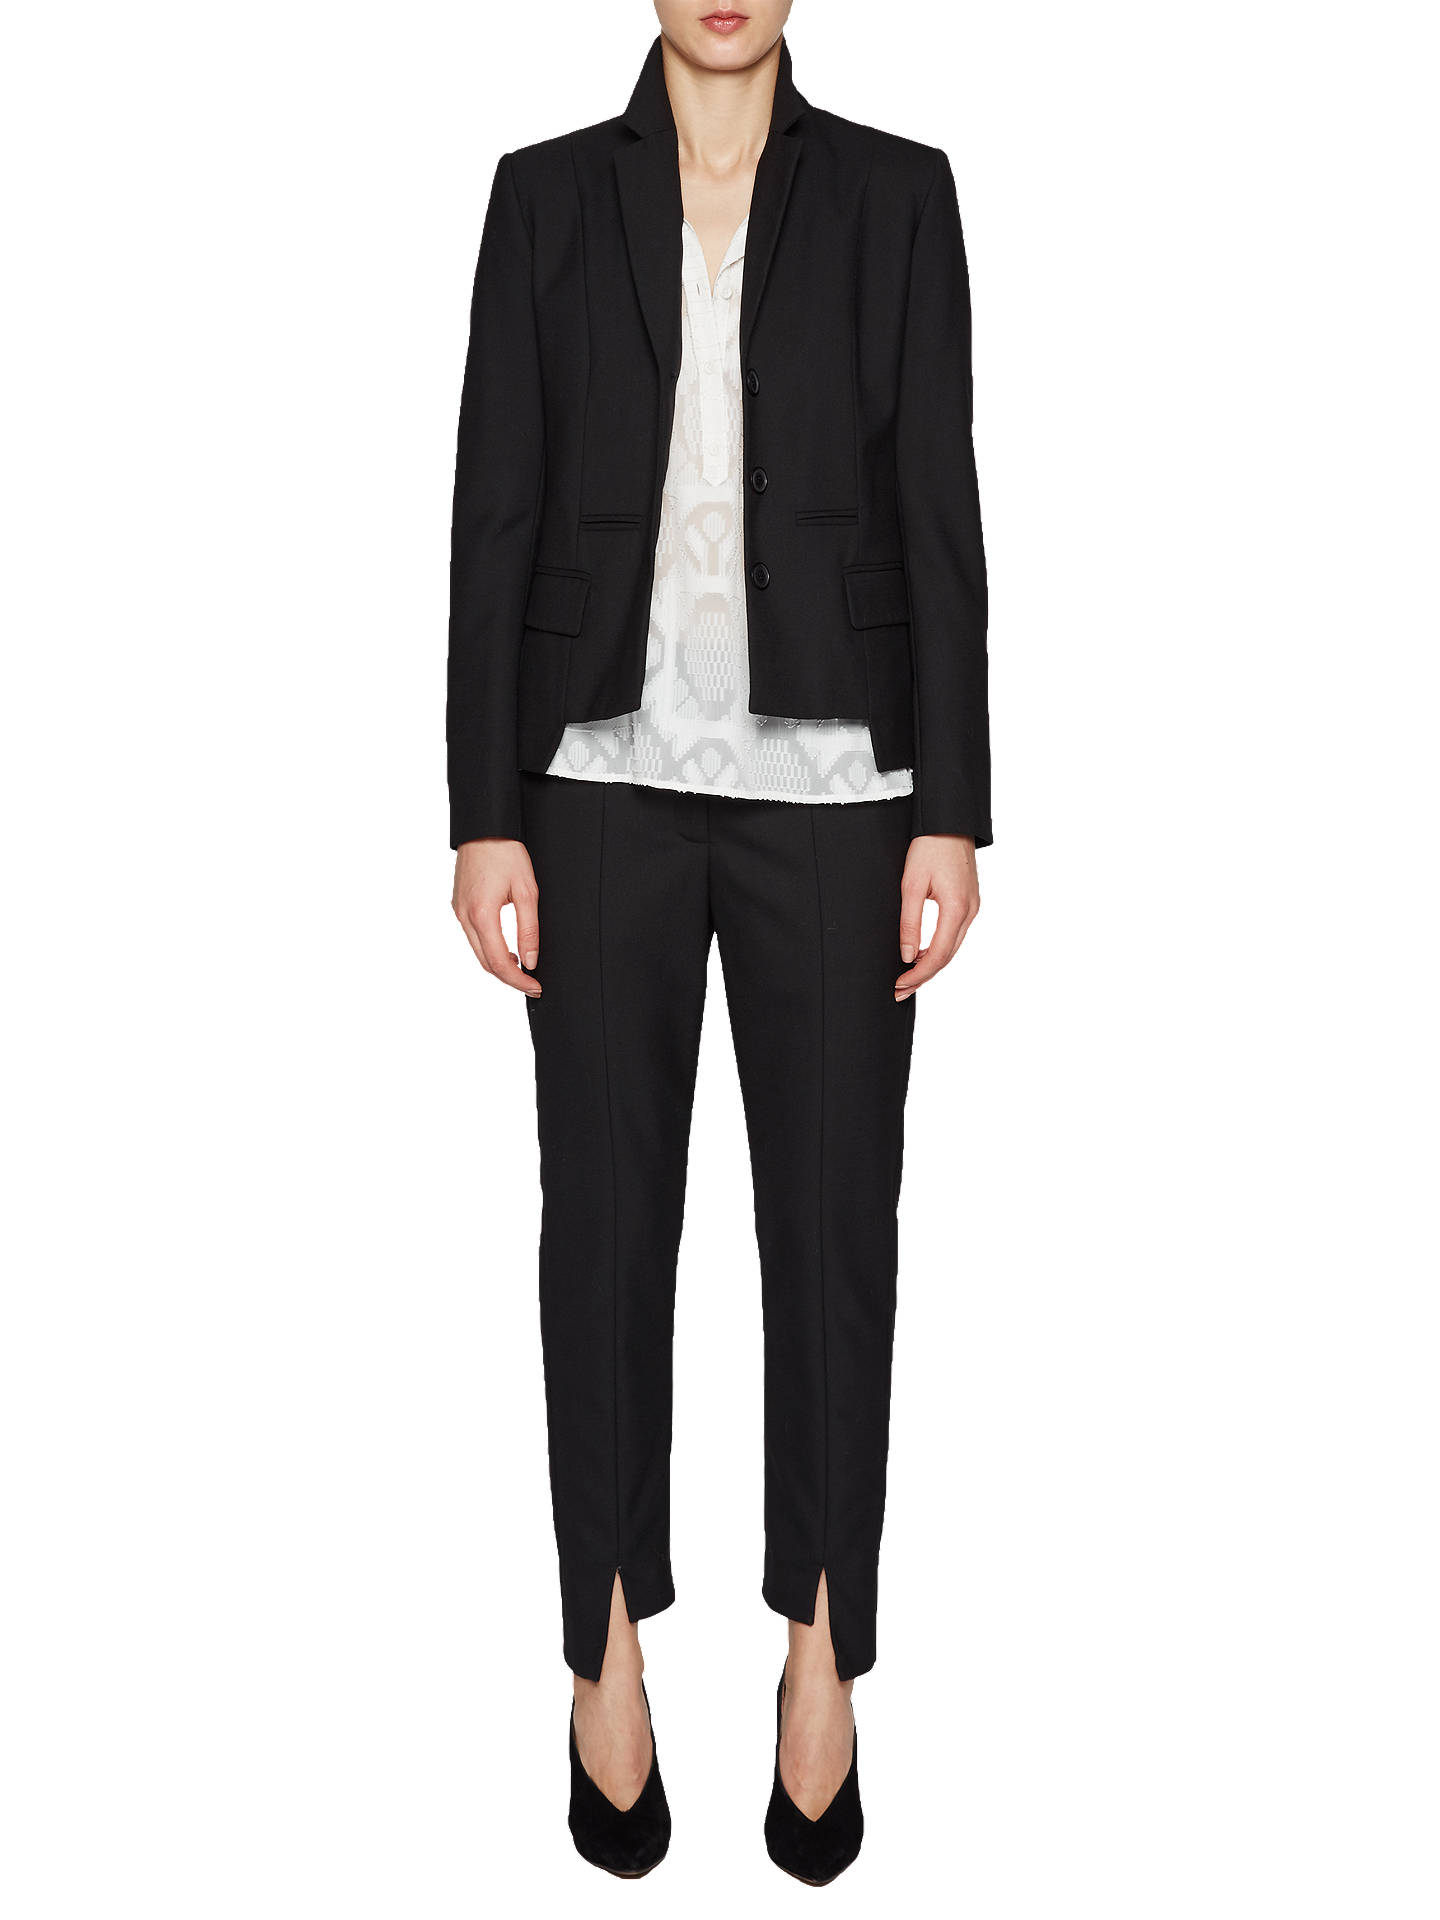 BuyFrench Connection Winter Tallulah Jacket, Black, 6 Online at johnlewis.com